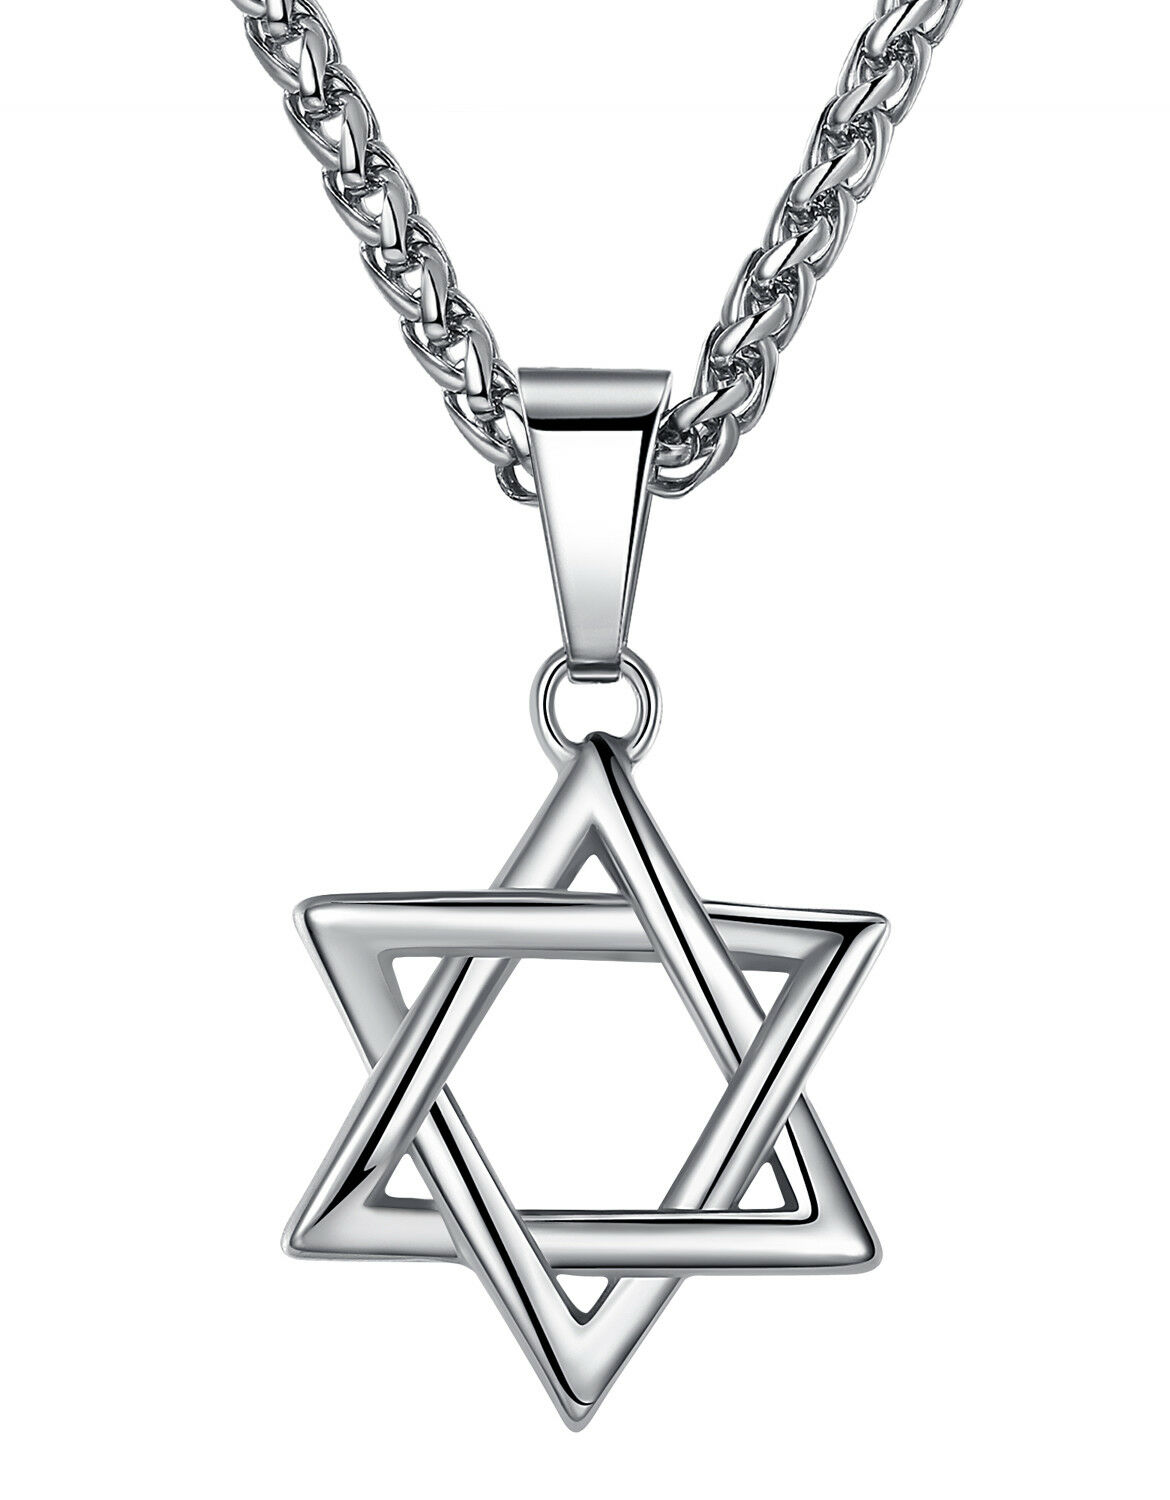 Stainless Steel Unisex Jewish Star of David Pendant Necklace Chains, Necklaces & Pendants